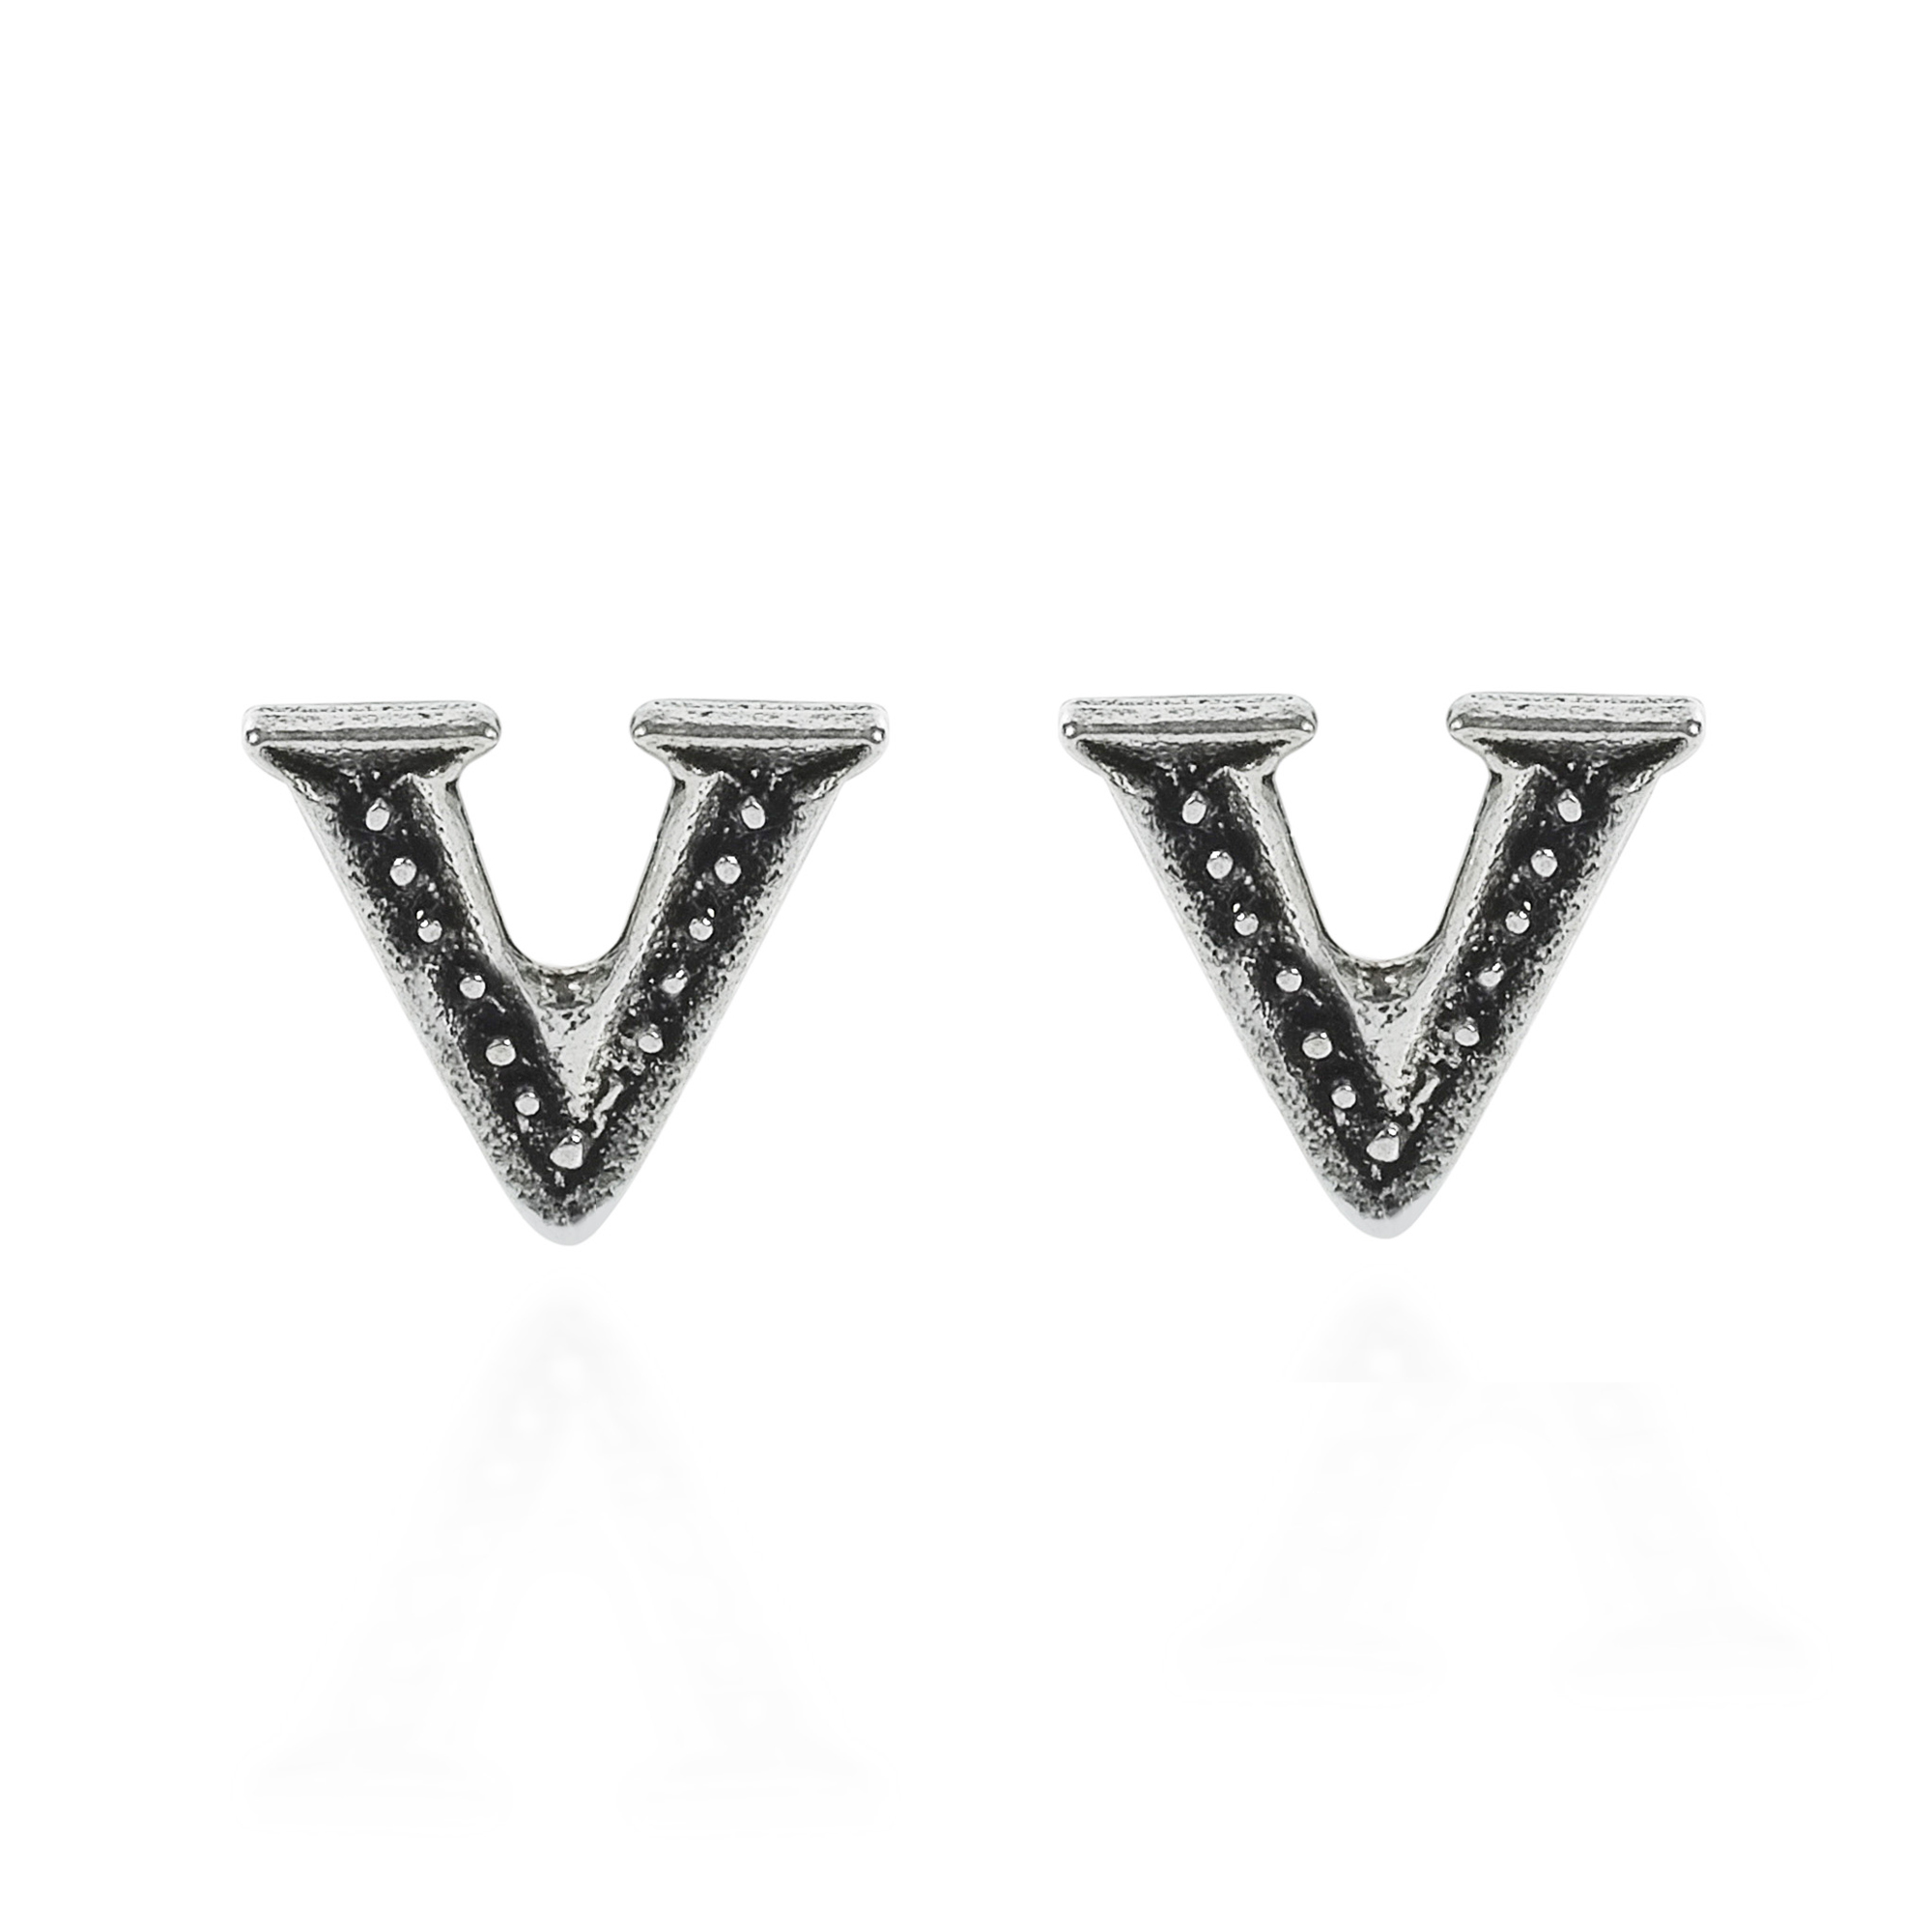 aeravida these plain sterling in this pair cool pe yet a handmade silver products the feature simple alphabet are details stud earrings u available stylish every of letter